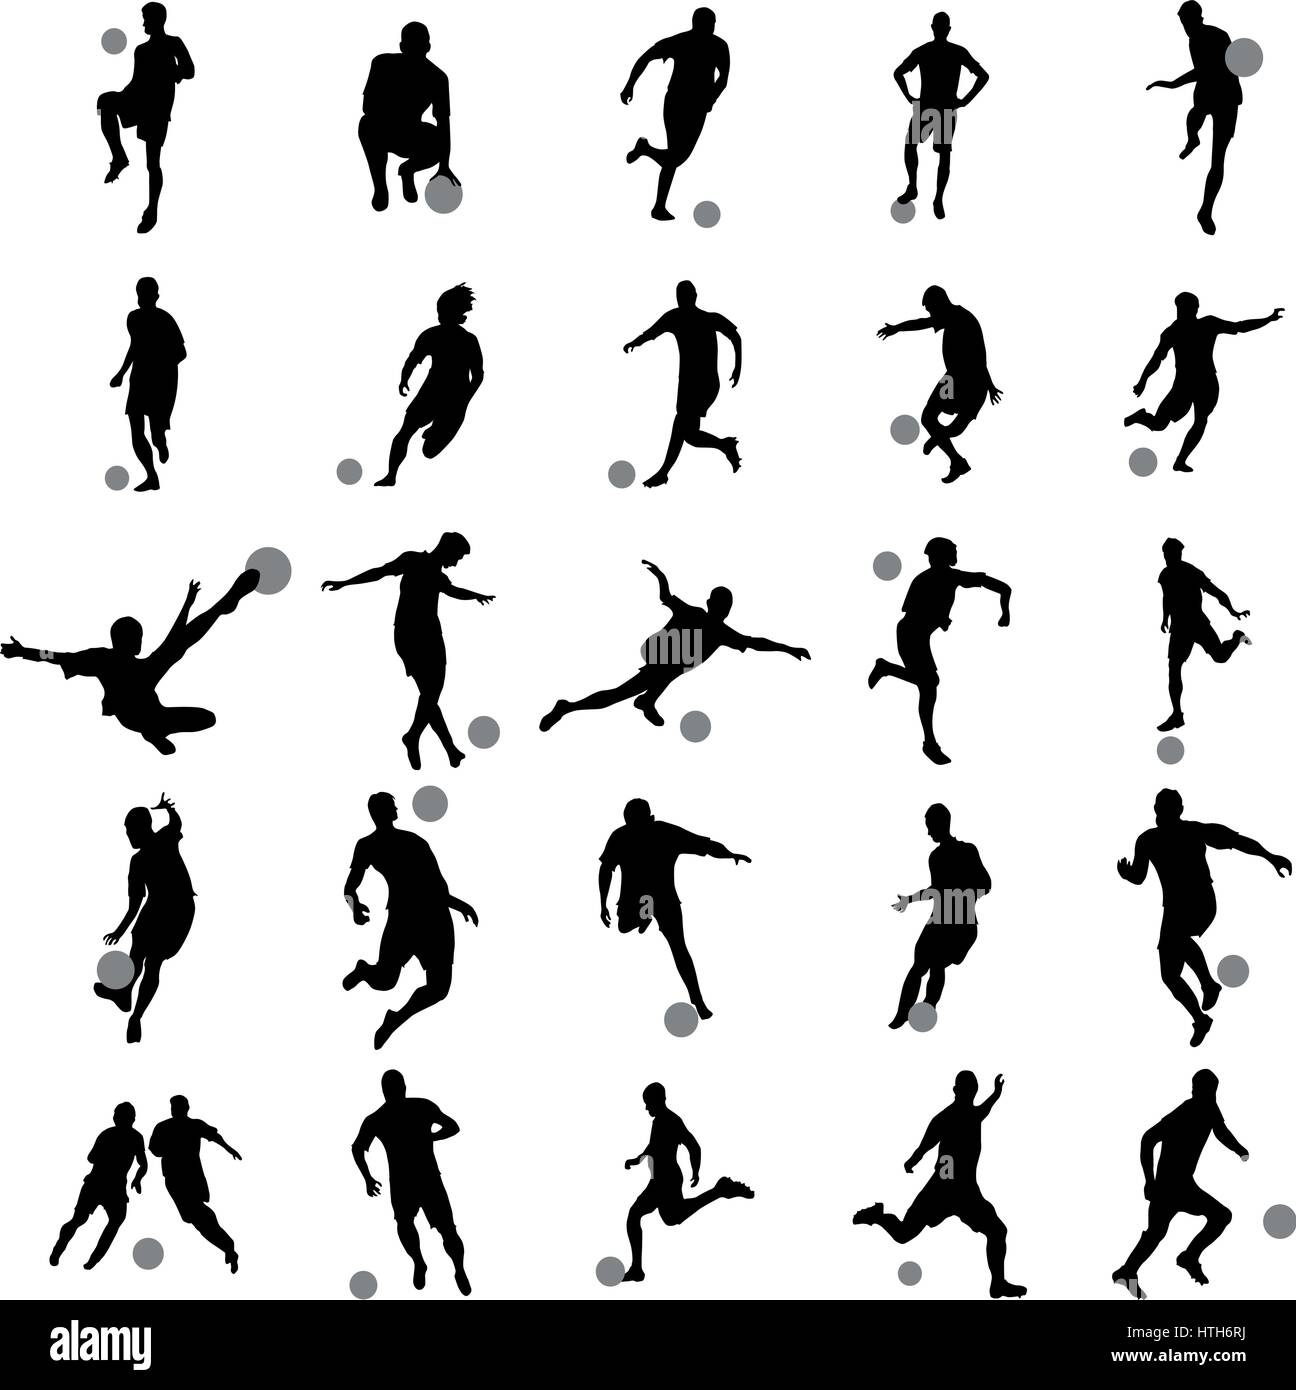 Soccer player silhouette set - Stock Image